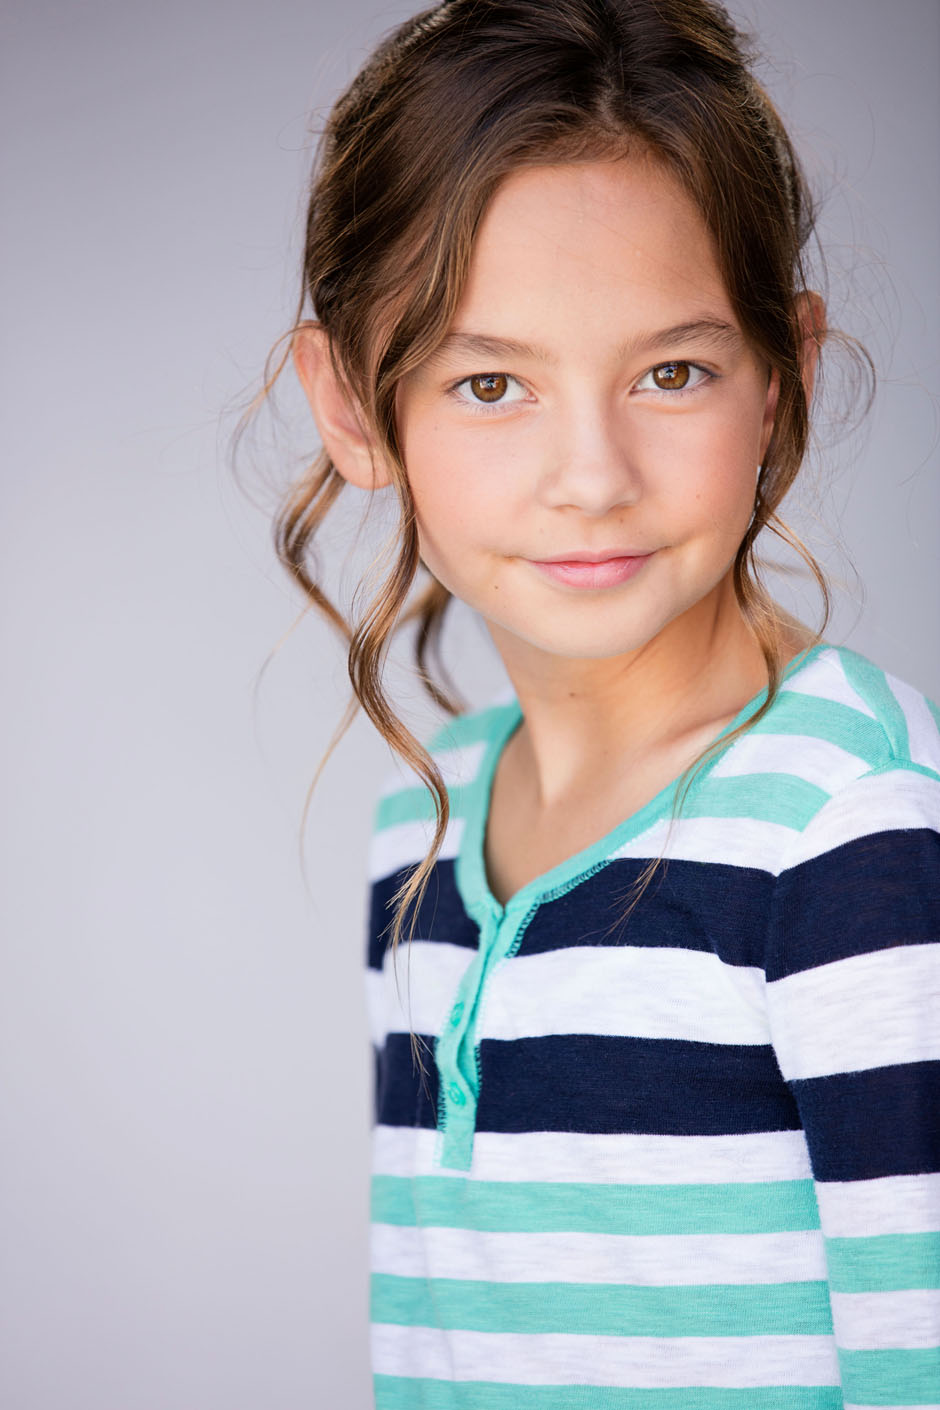 headshots for child actors